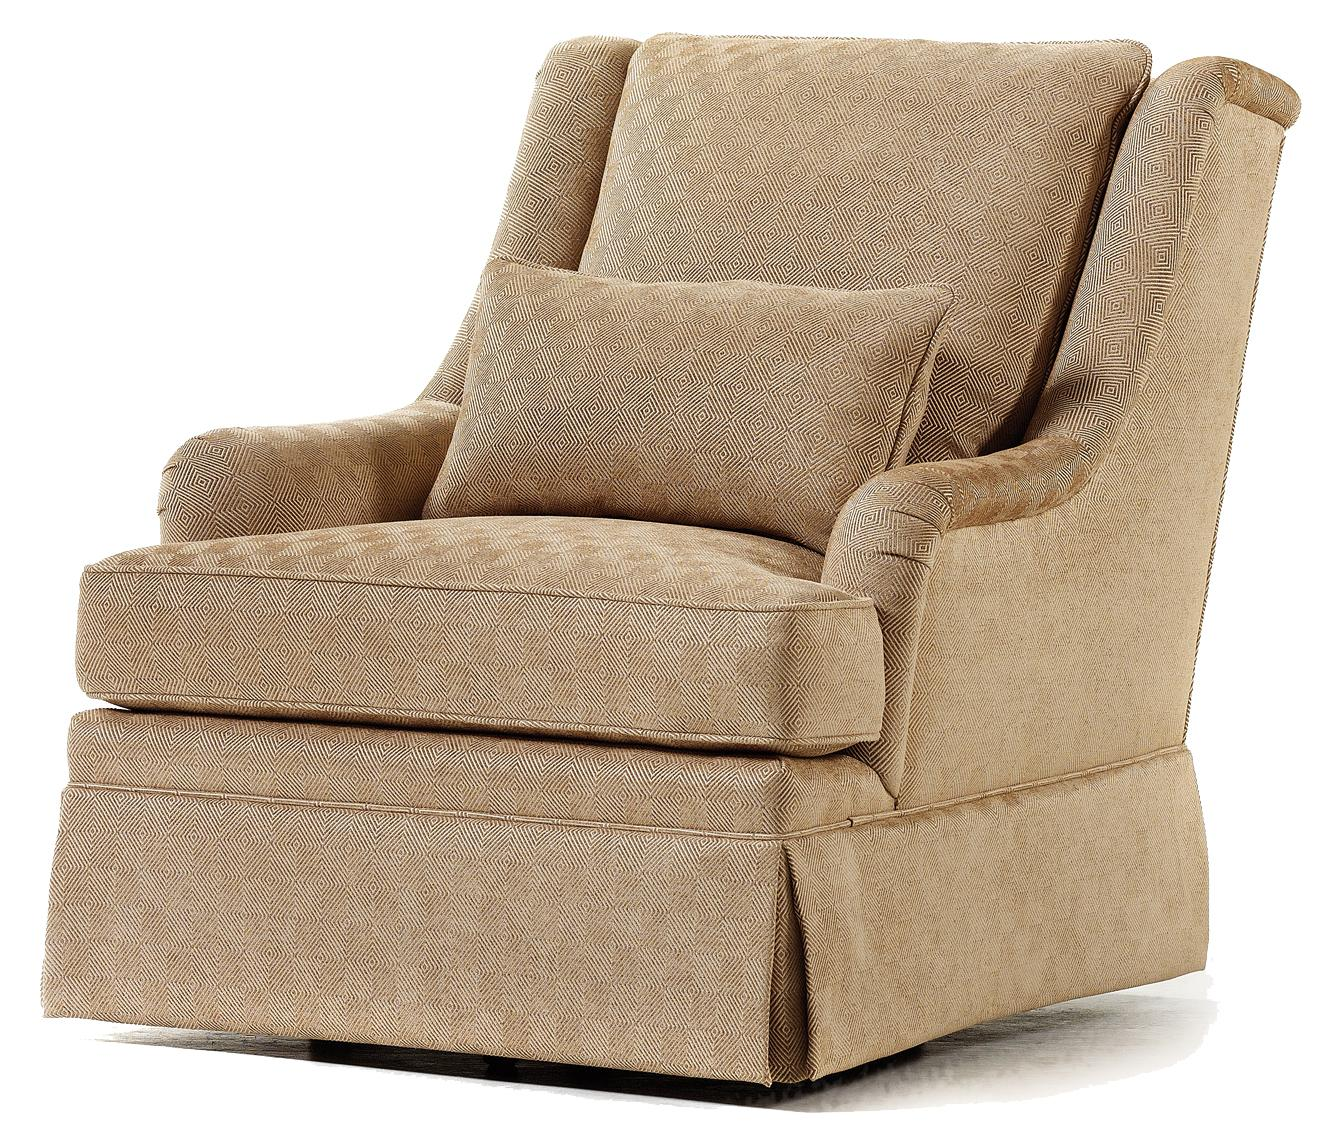 Fine Upholstered Accents Winston Swivel Rocker    by Jessica Charles at Alison Craig Home Furnishings